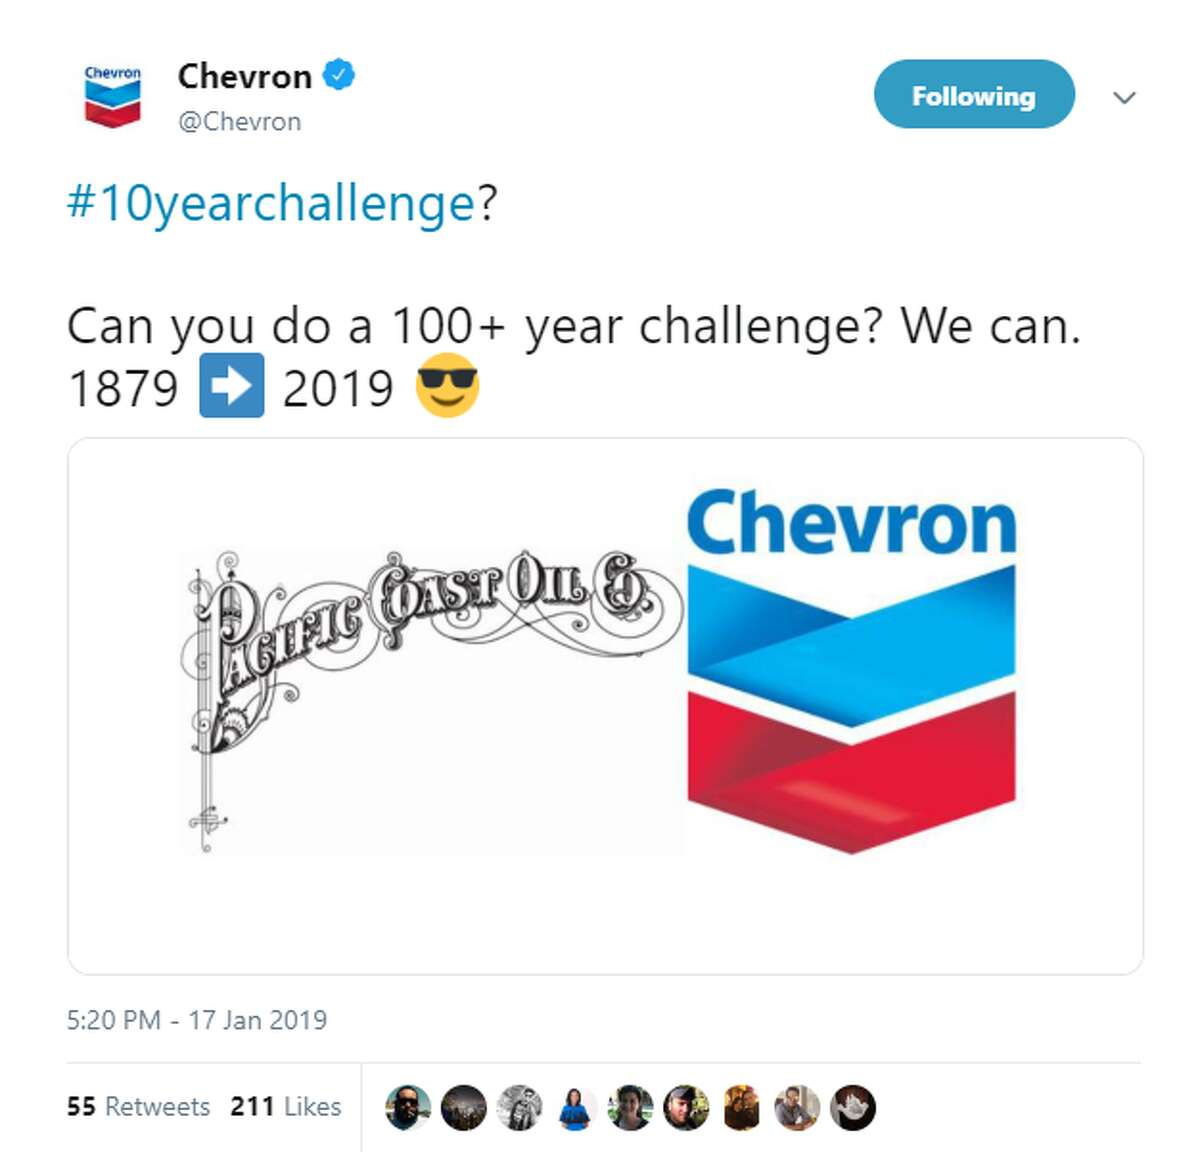 In a Jan. 17 tweet, Chevron issued a 100-year challenge as a response to the 10-year challenge craze on social media.